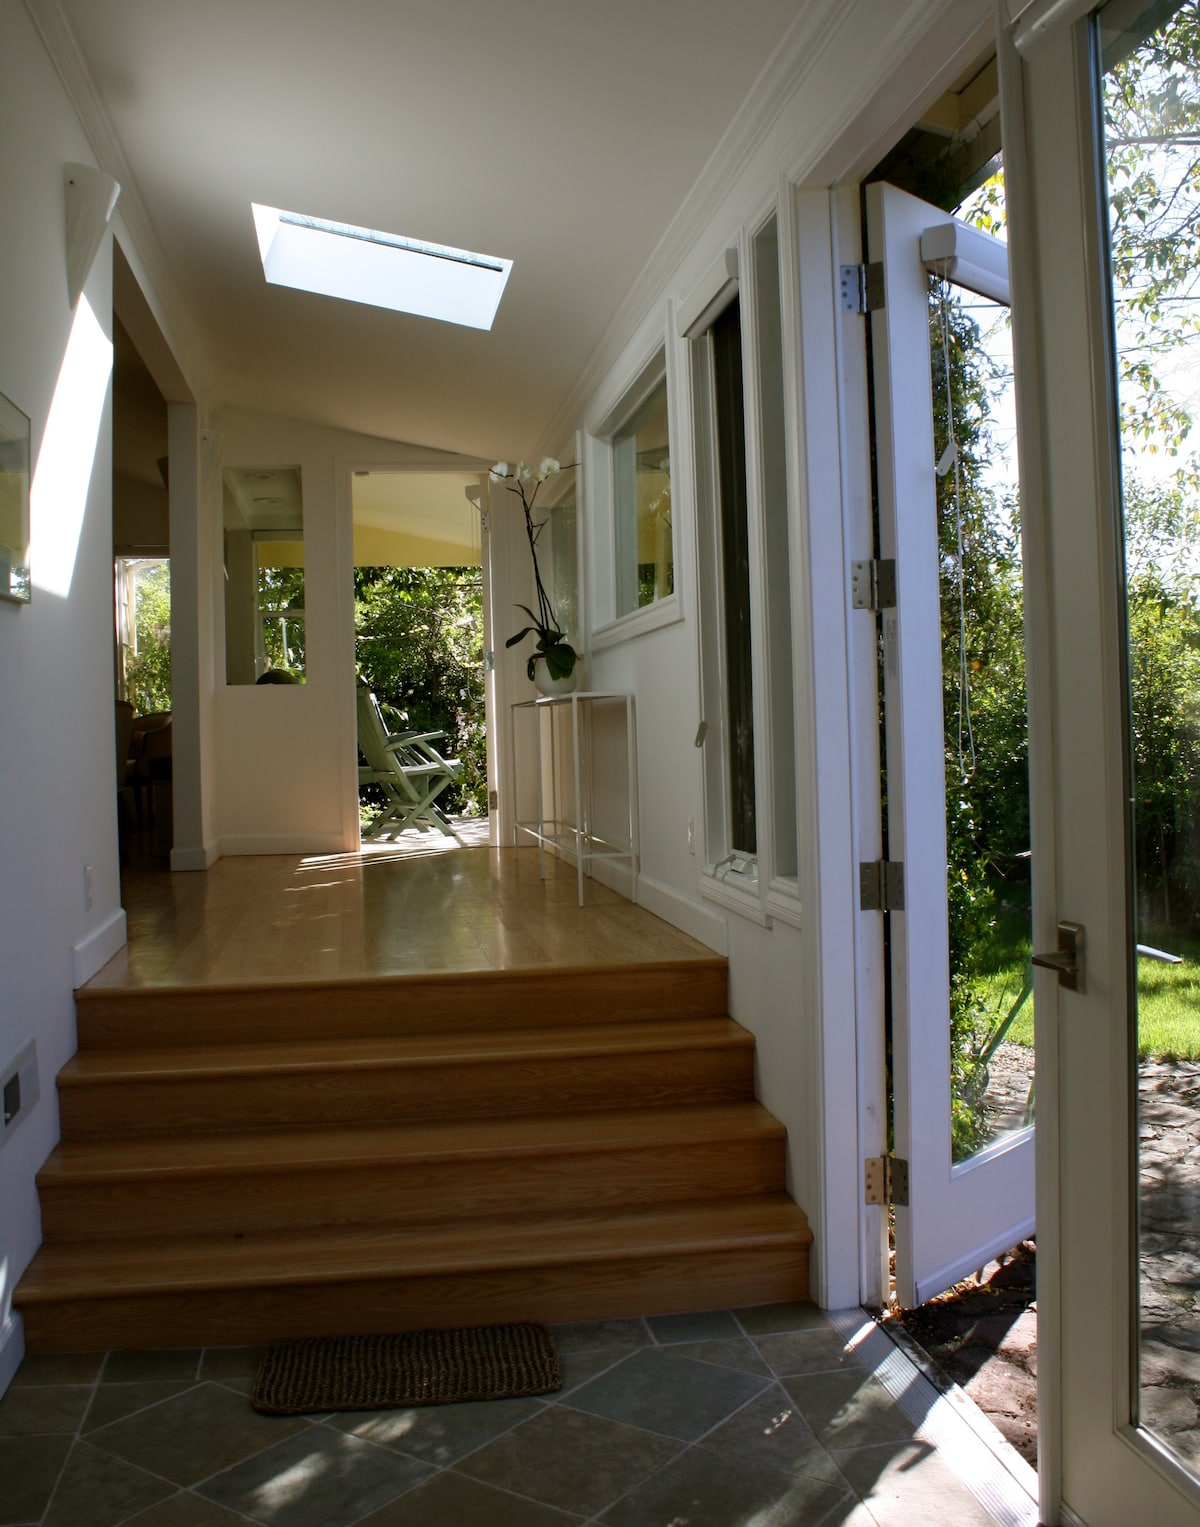 Entry Hall, with french doors and porch to front garden